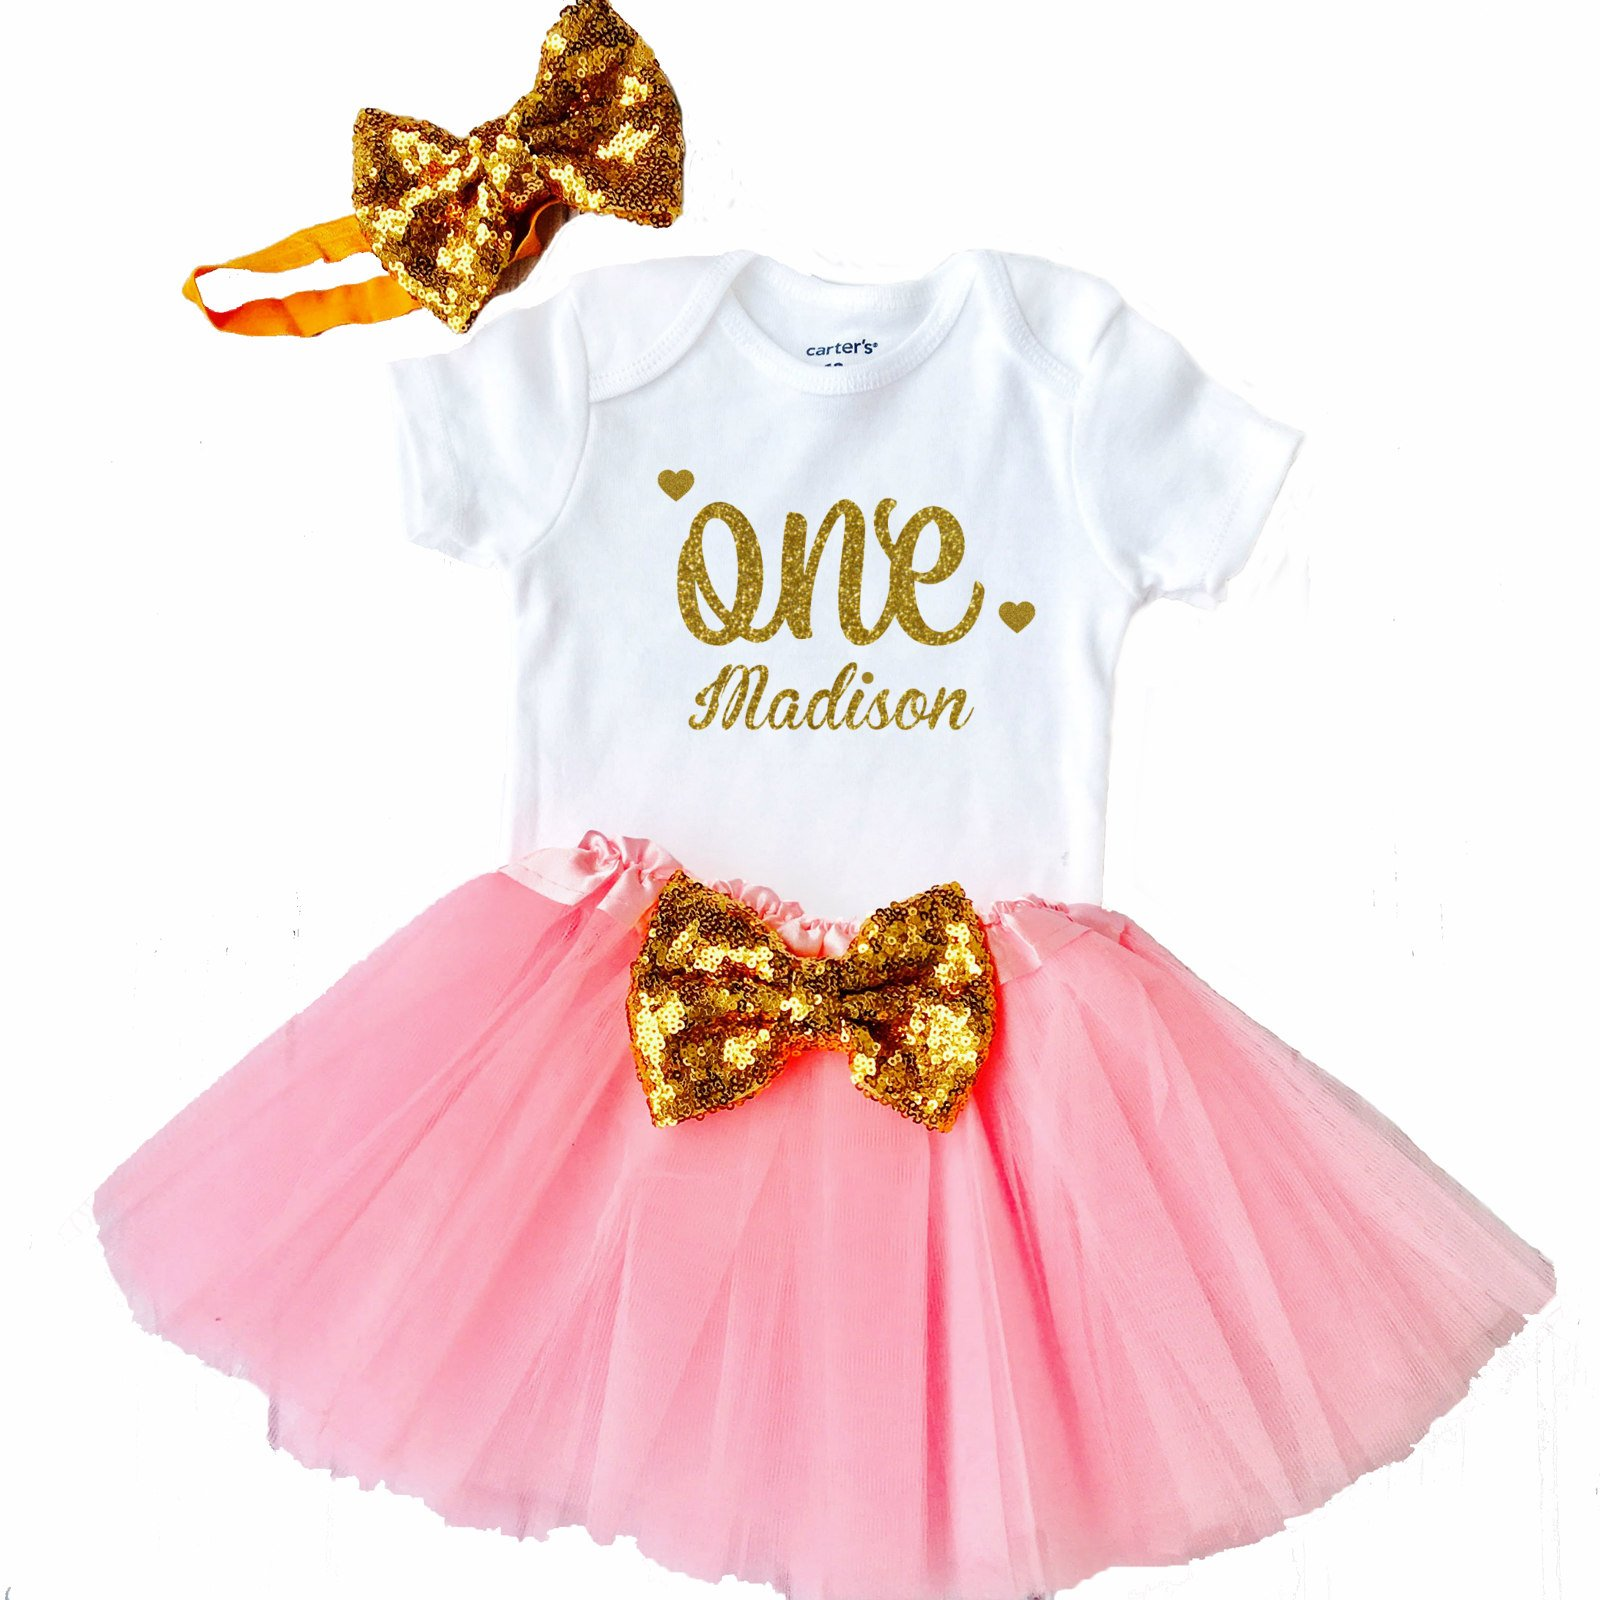 Personalized Baby Girls 1st Birthday Outfit, 1st Birthday Gift, First Birthday Outfit - Sparkly Gold One Design (18 Month, Light Pink) by Funmunchkins